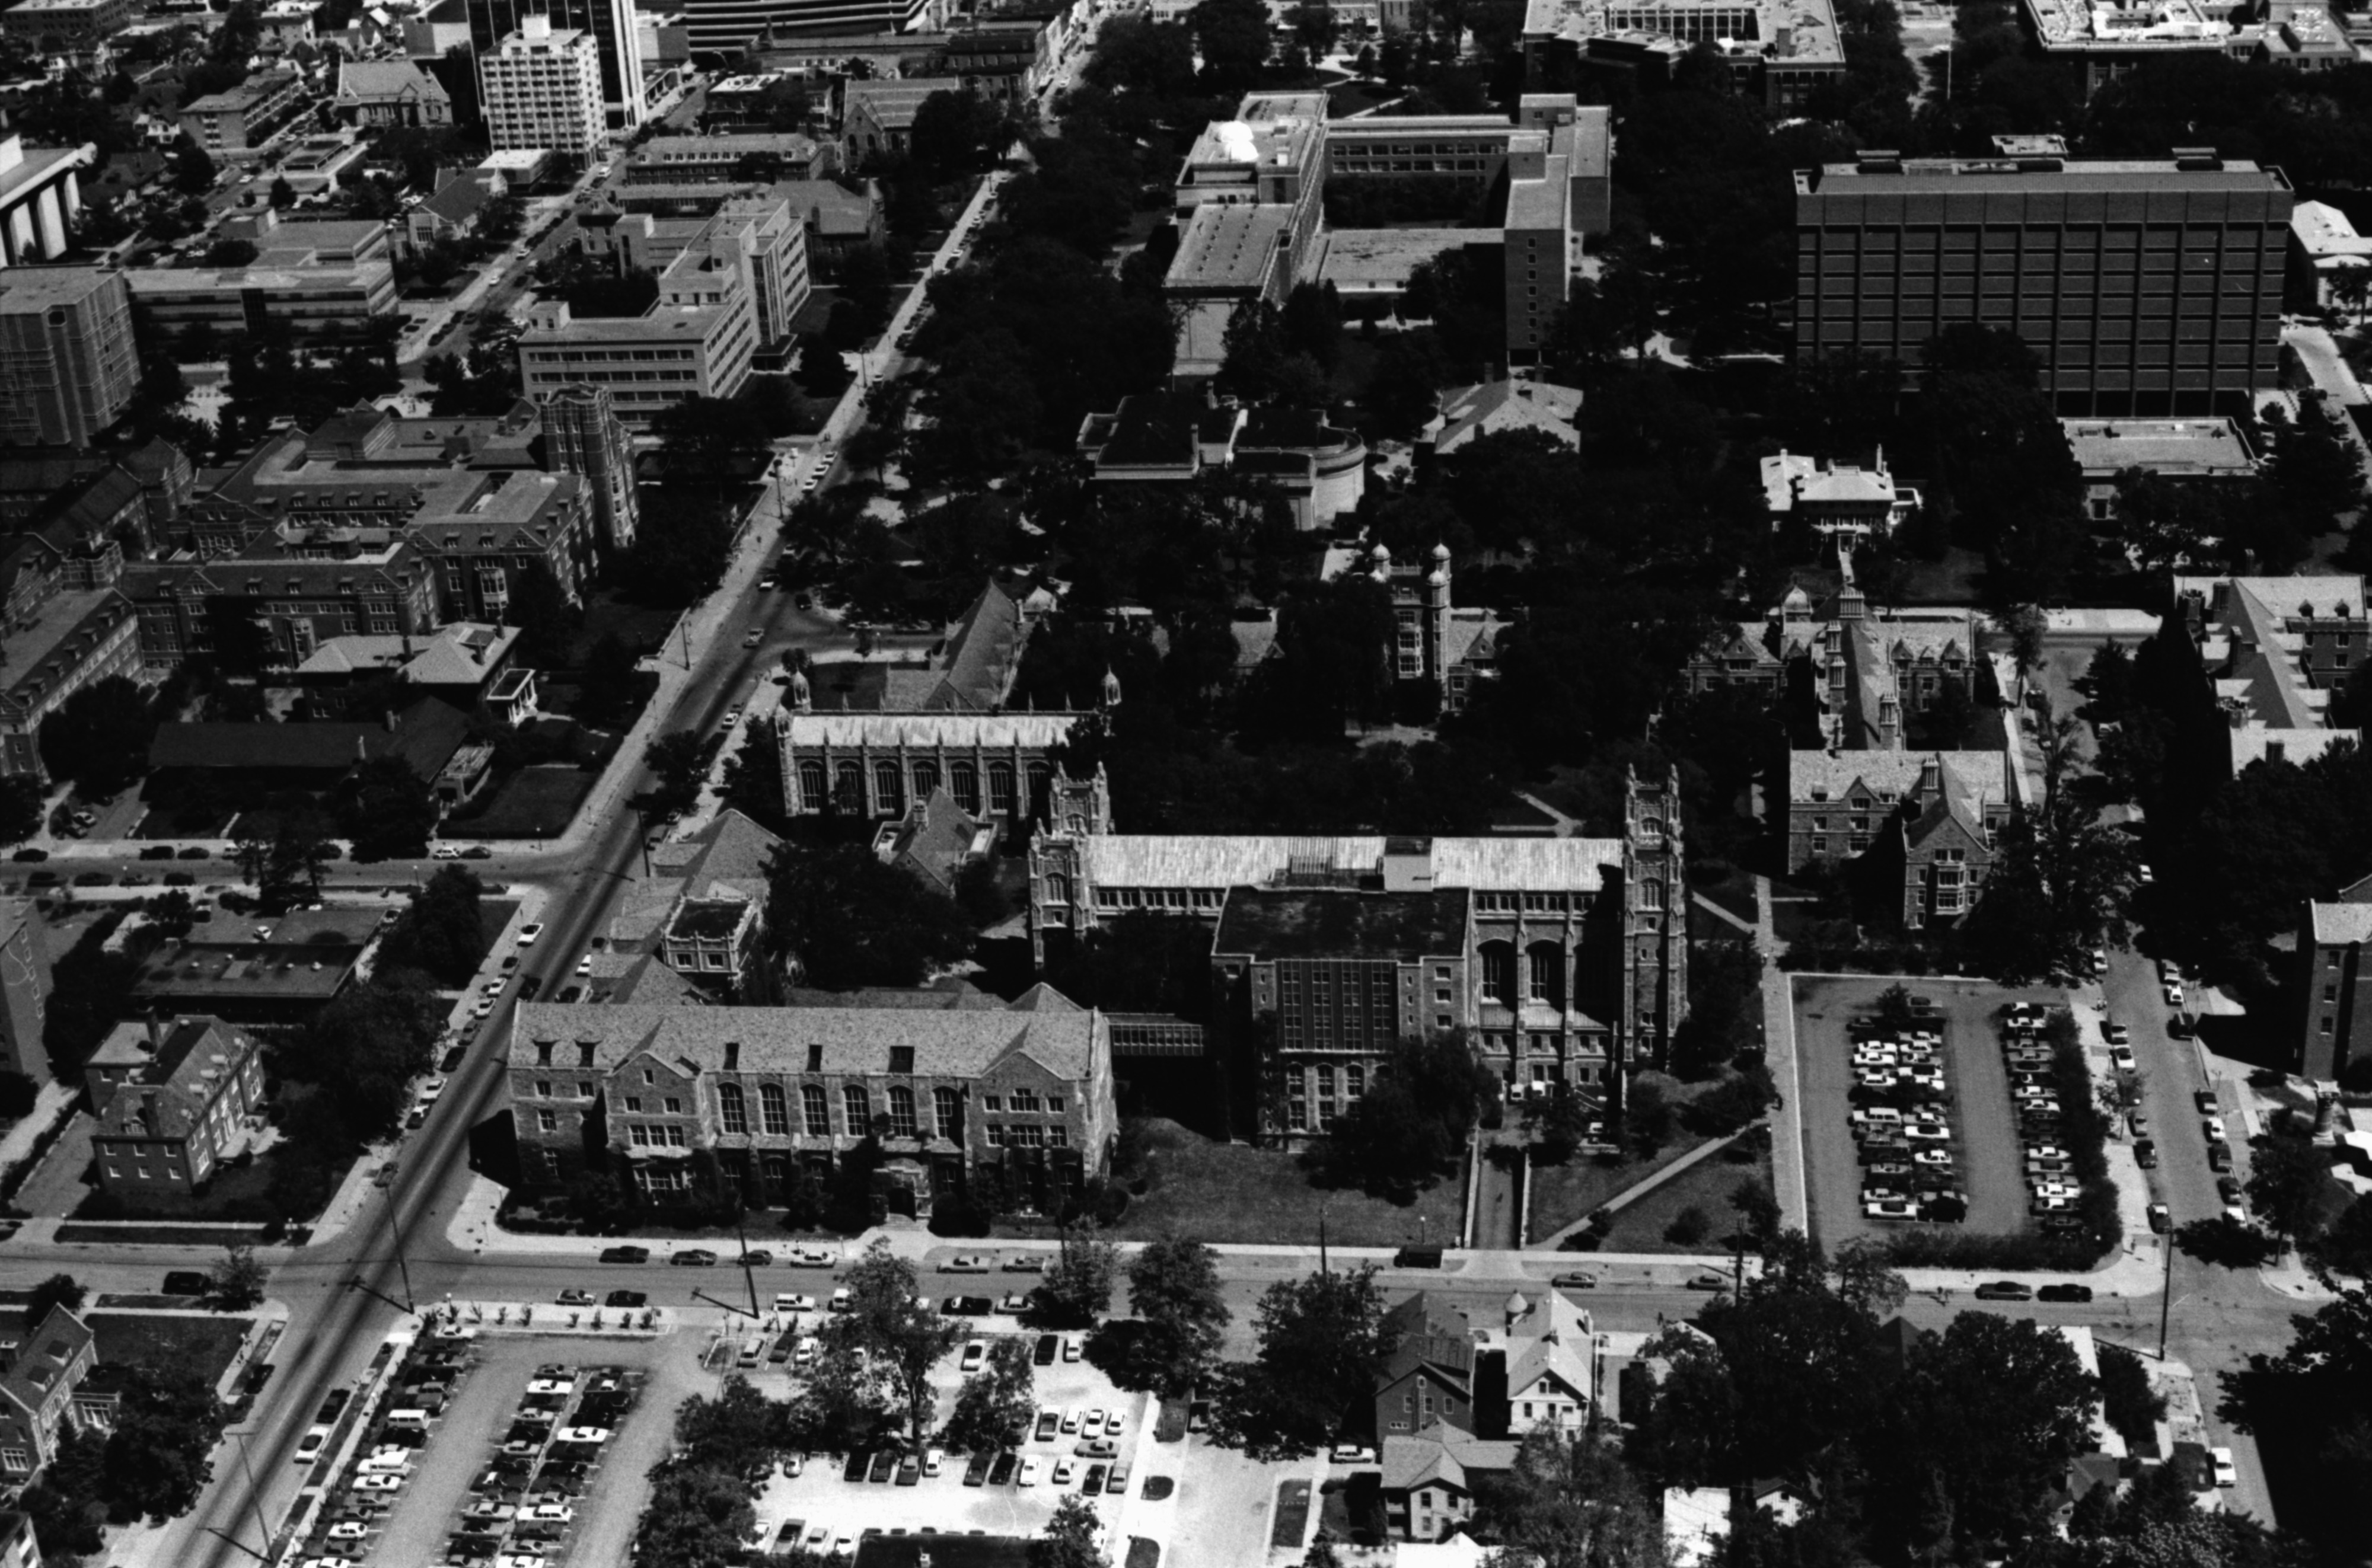 Aerial Photograph of University of Michigan Central Campus, July 1977 image